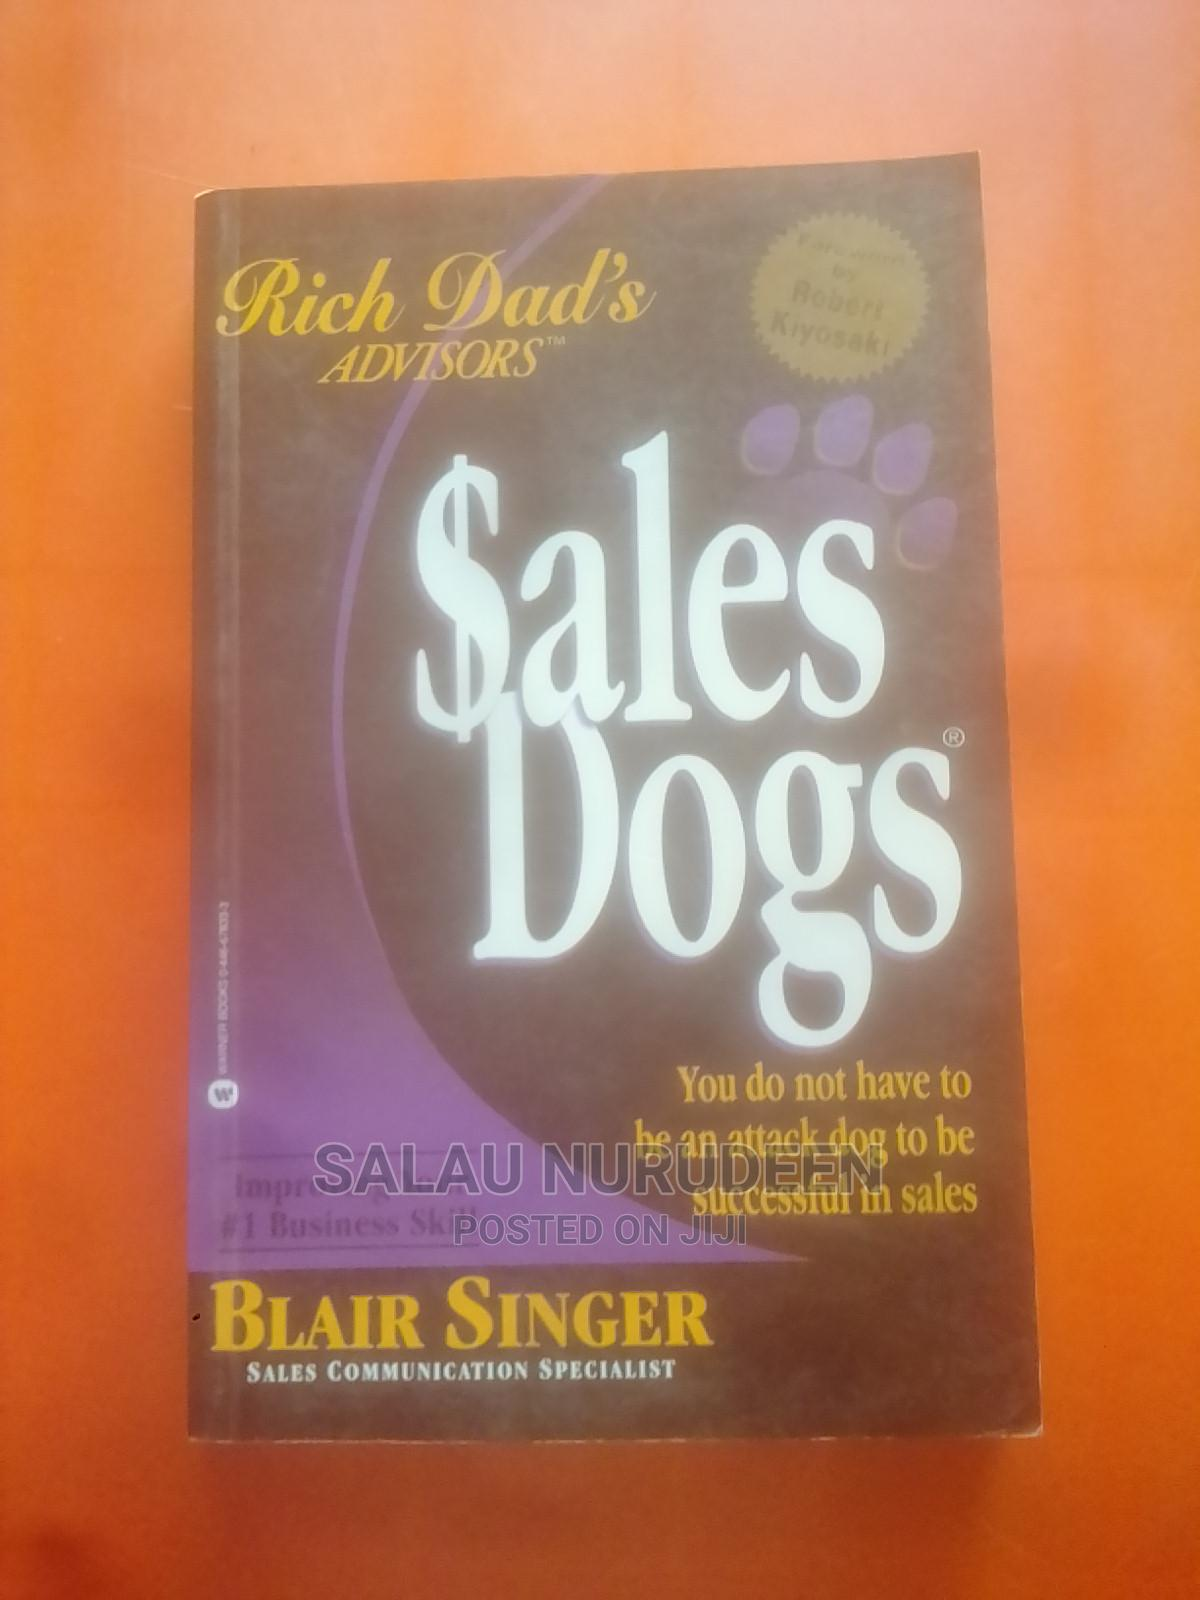 Archive: Sales Dogs